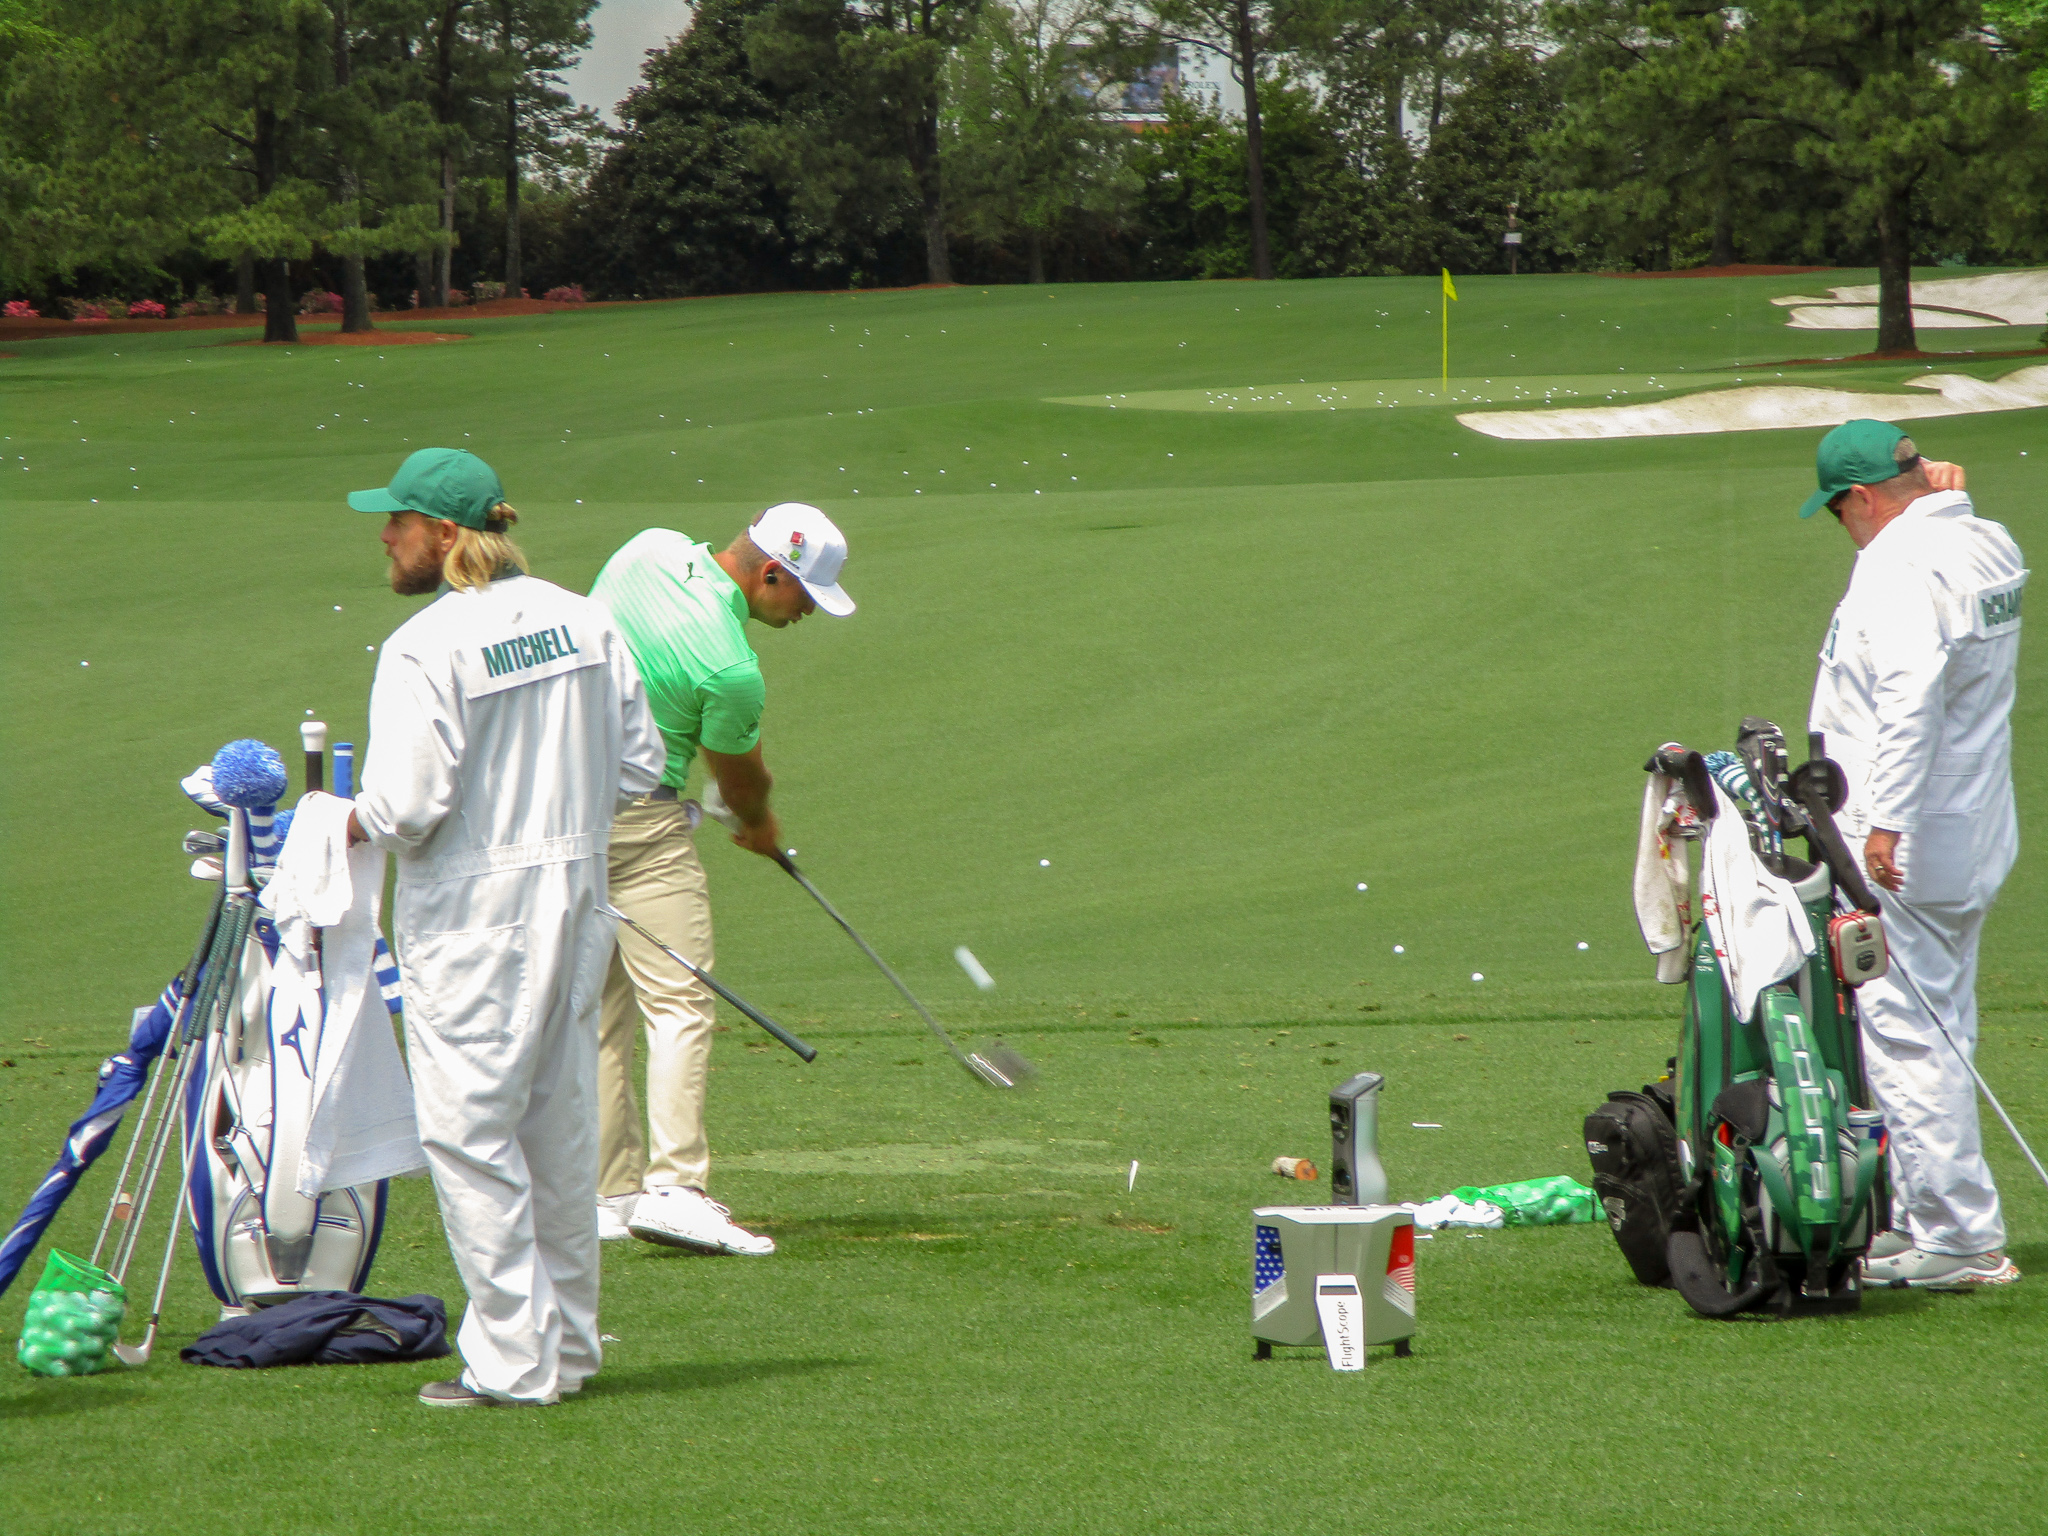 Bryson DeChambeau Driving Range Augusta National Golf Club US-Masters 2019